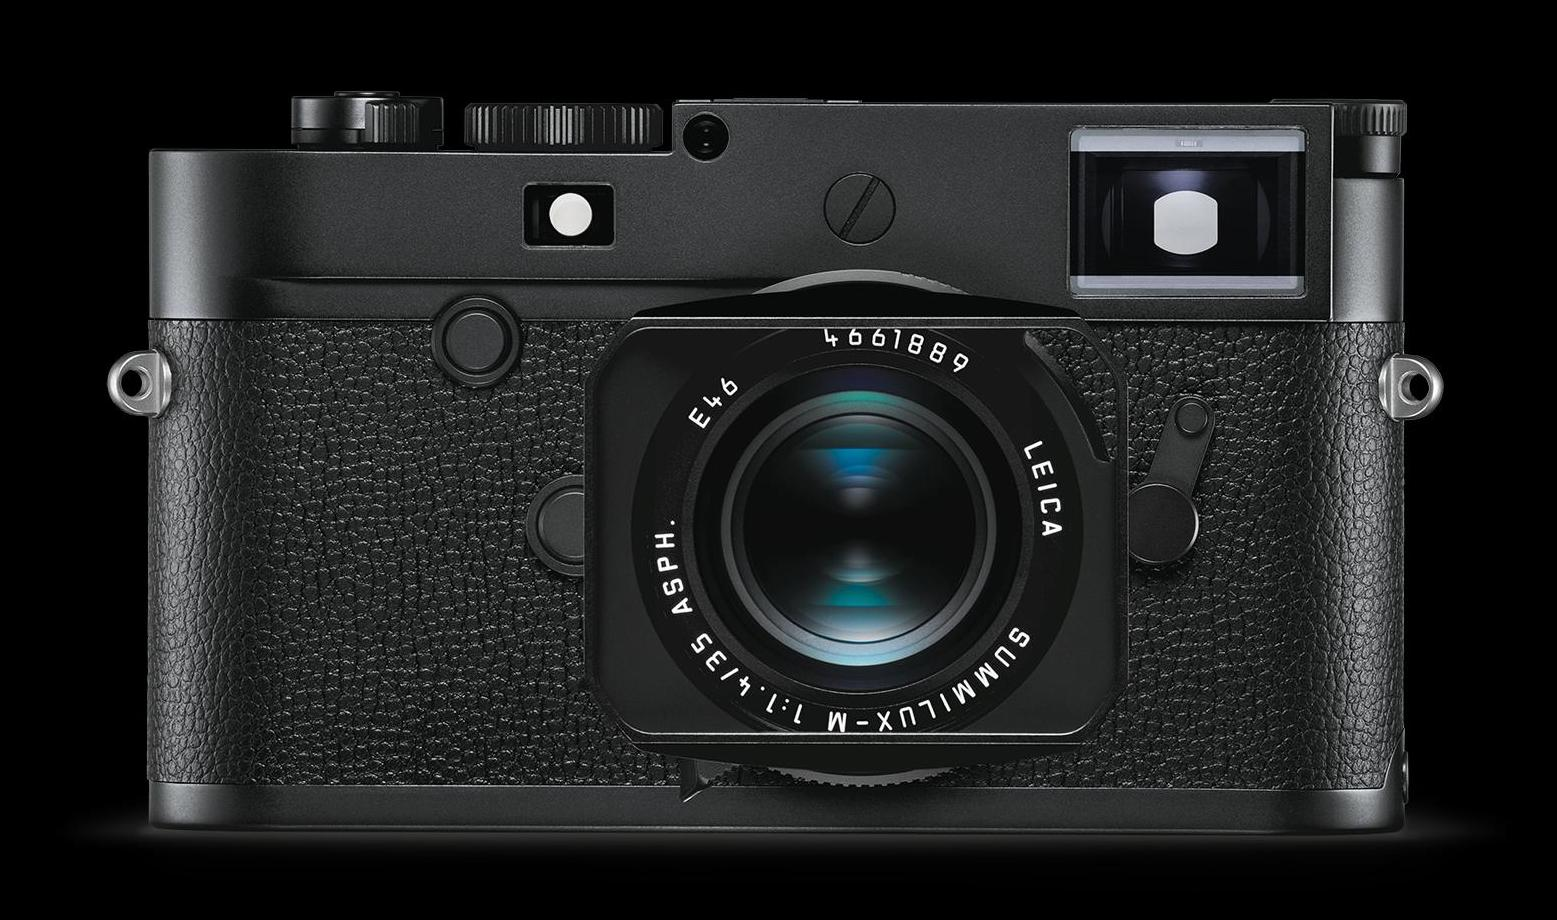 Firmware update 2.12.8.0 for the new Leica M10 Monochrom camera released - Leica Rumors